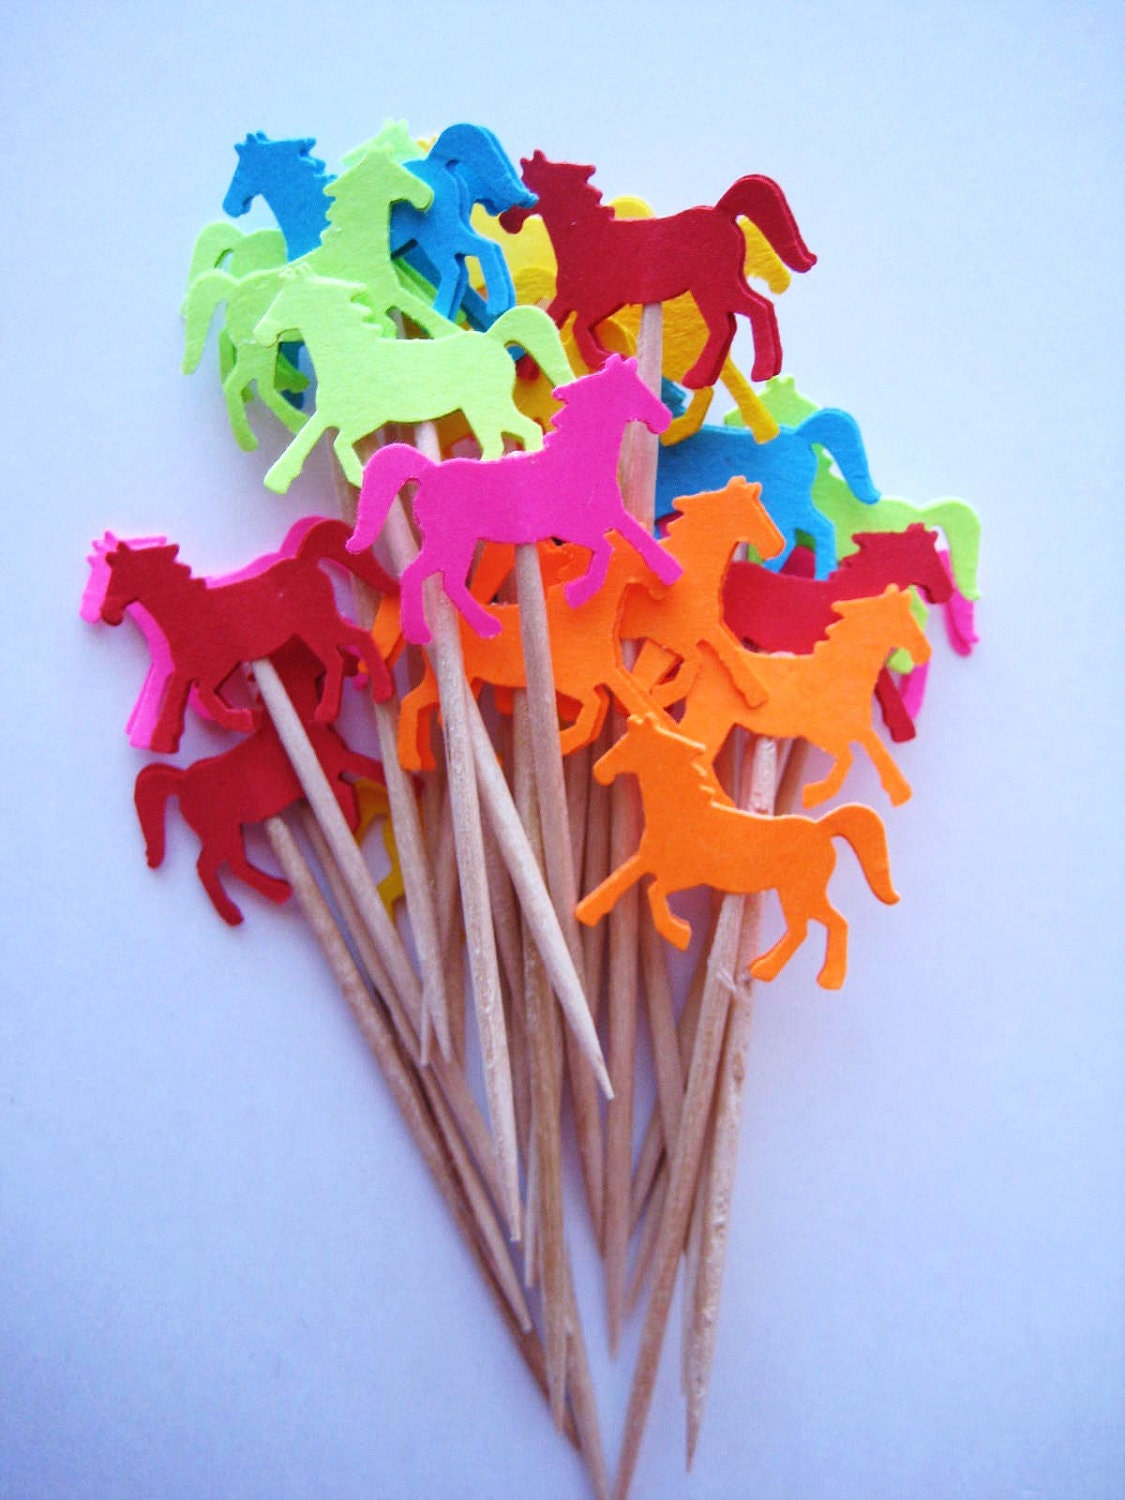 24 Bright Horse Party Picks Cupcake Toppers Toothpicks